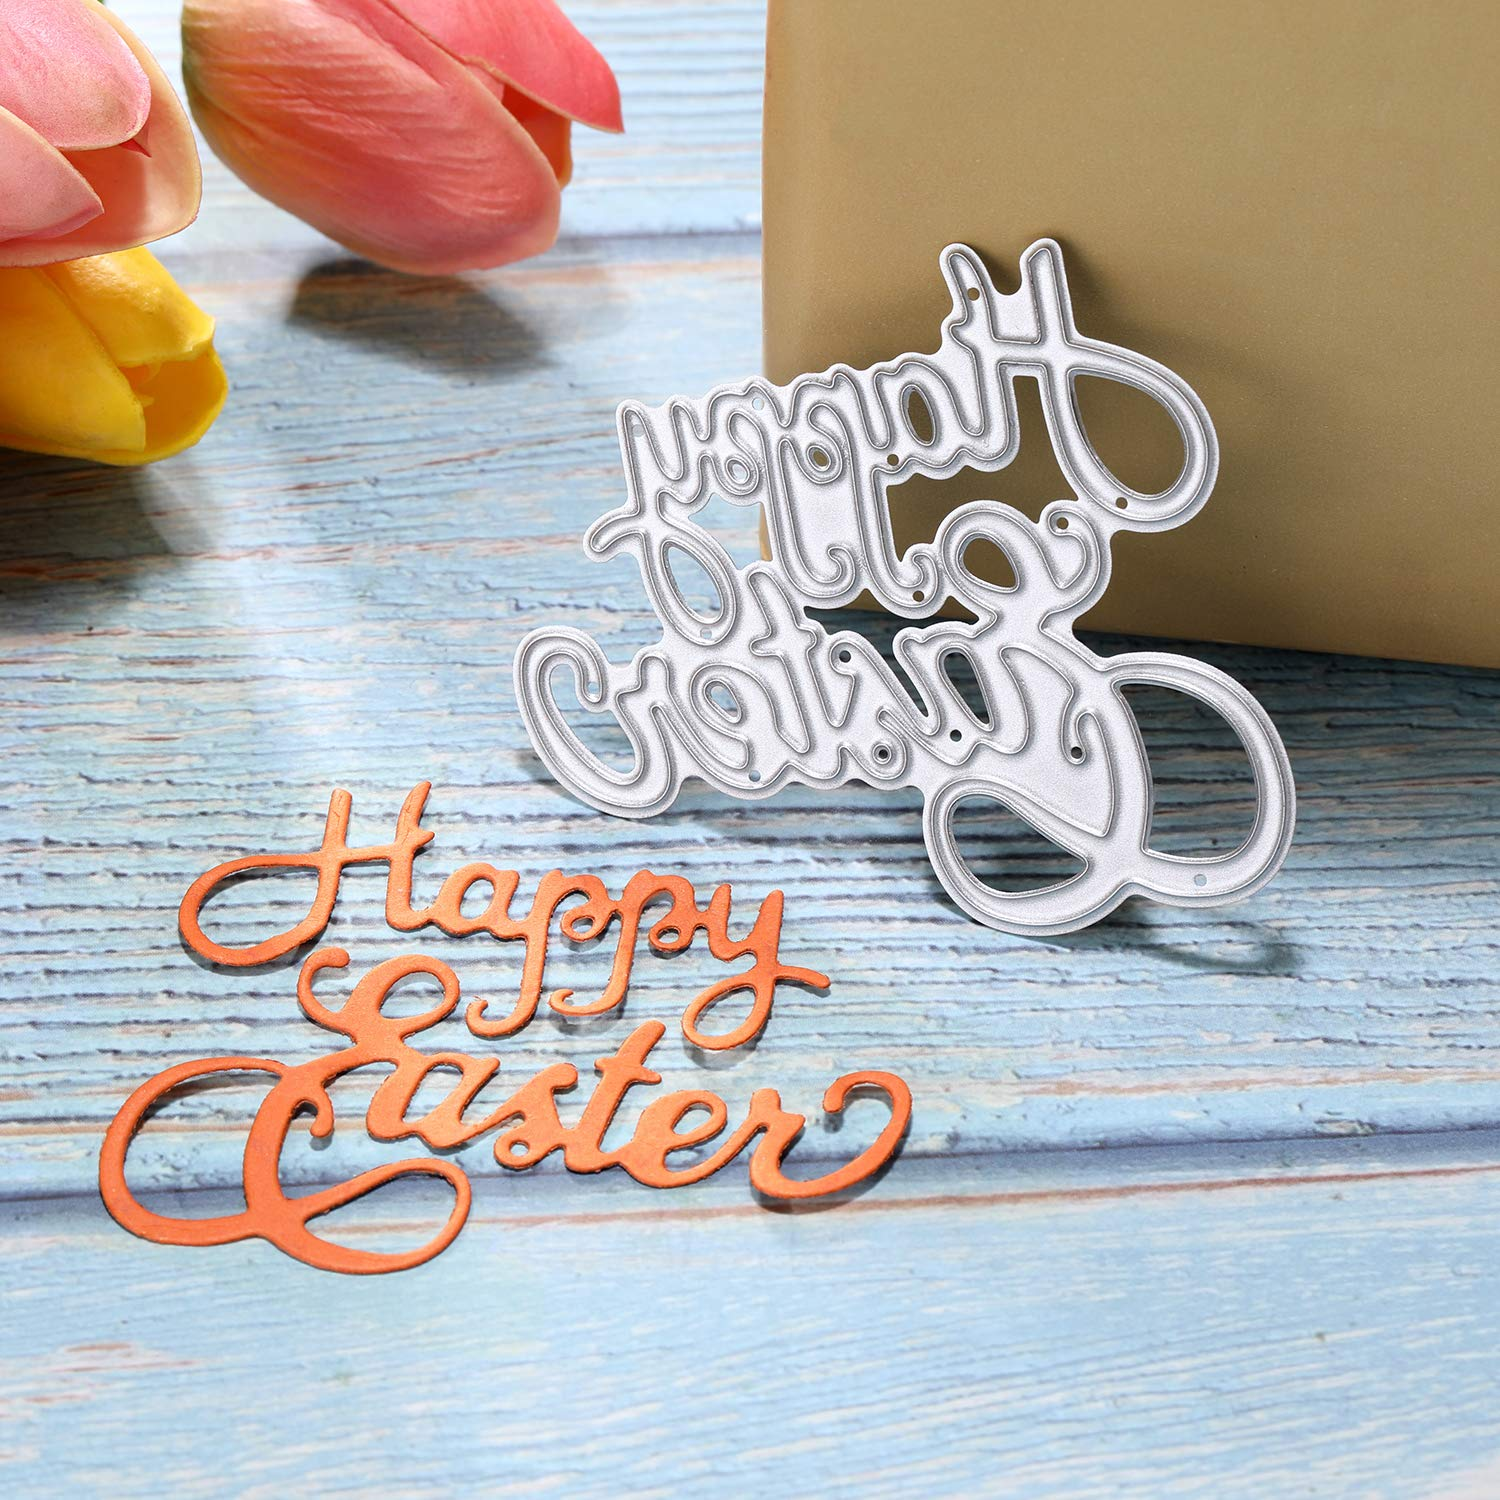 Tatuo Metal Cutting Dies Easter Eggs and Bunny Cutting Dies Stencil Happy Easter Letter Dies Cut Stencil for Scrapbooking DIY Cards Photos